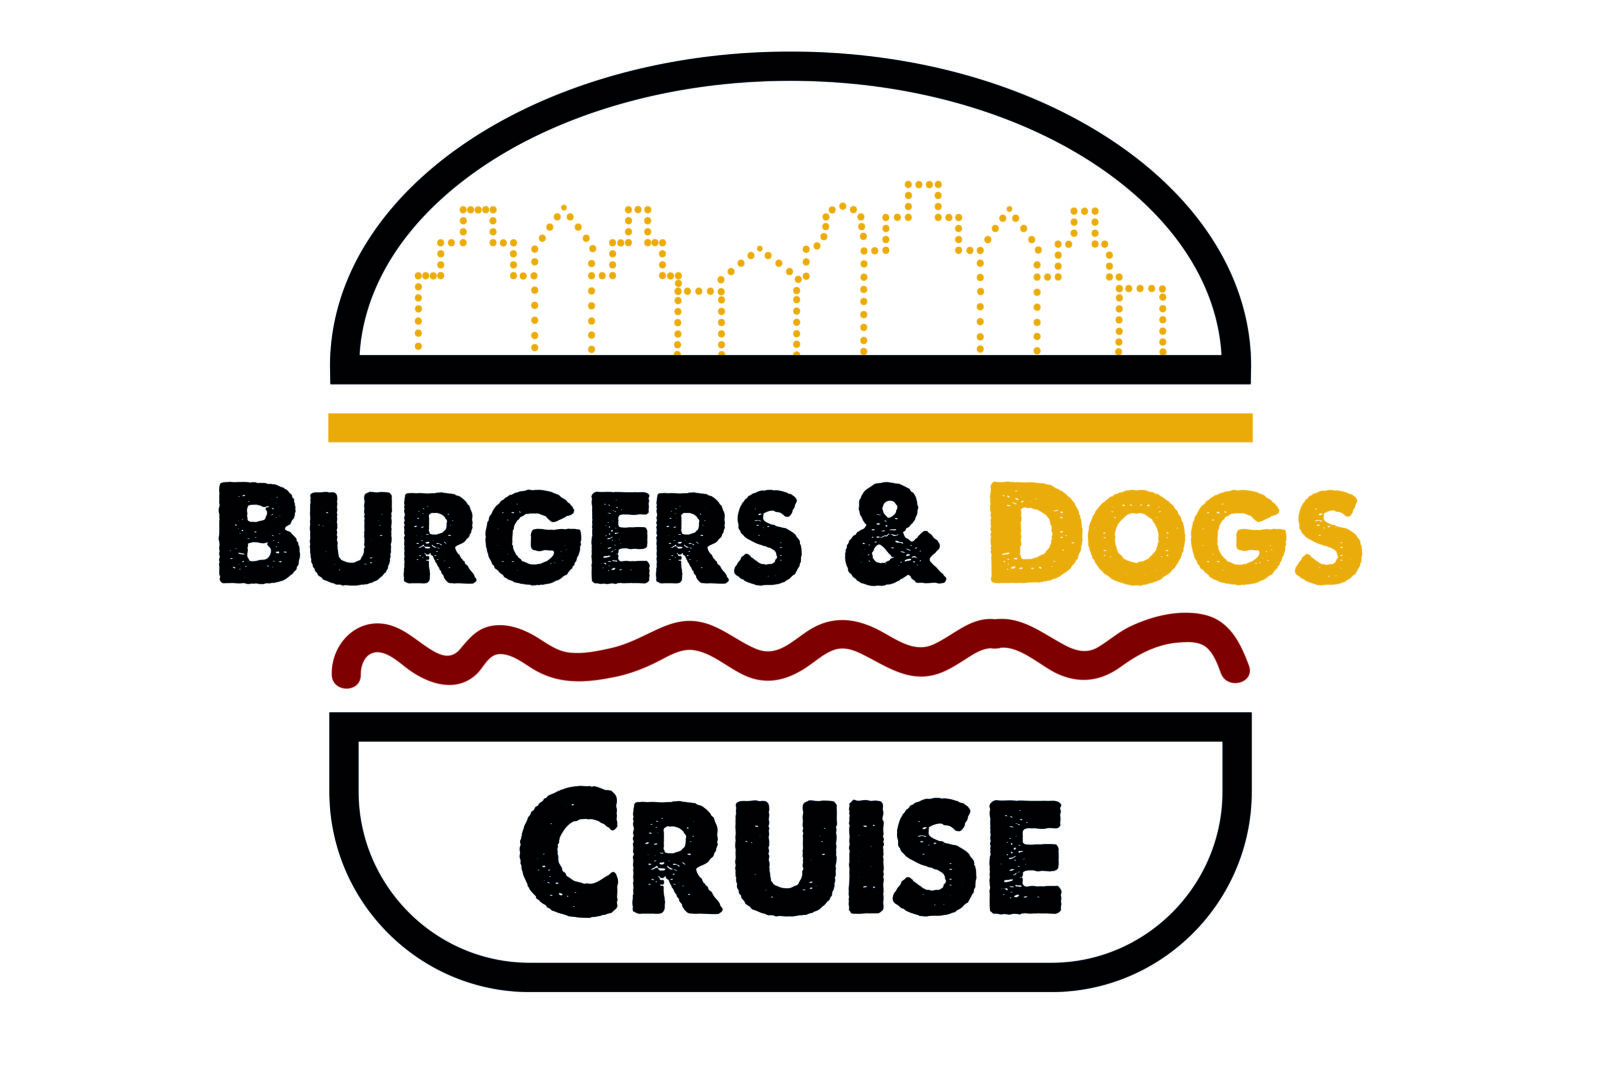 Amsterdam Burgers & Dogs cruise